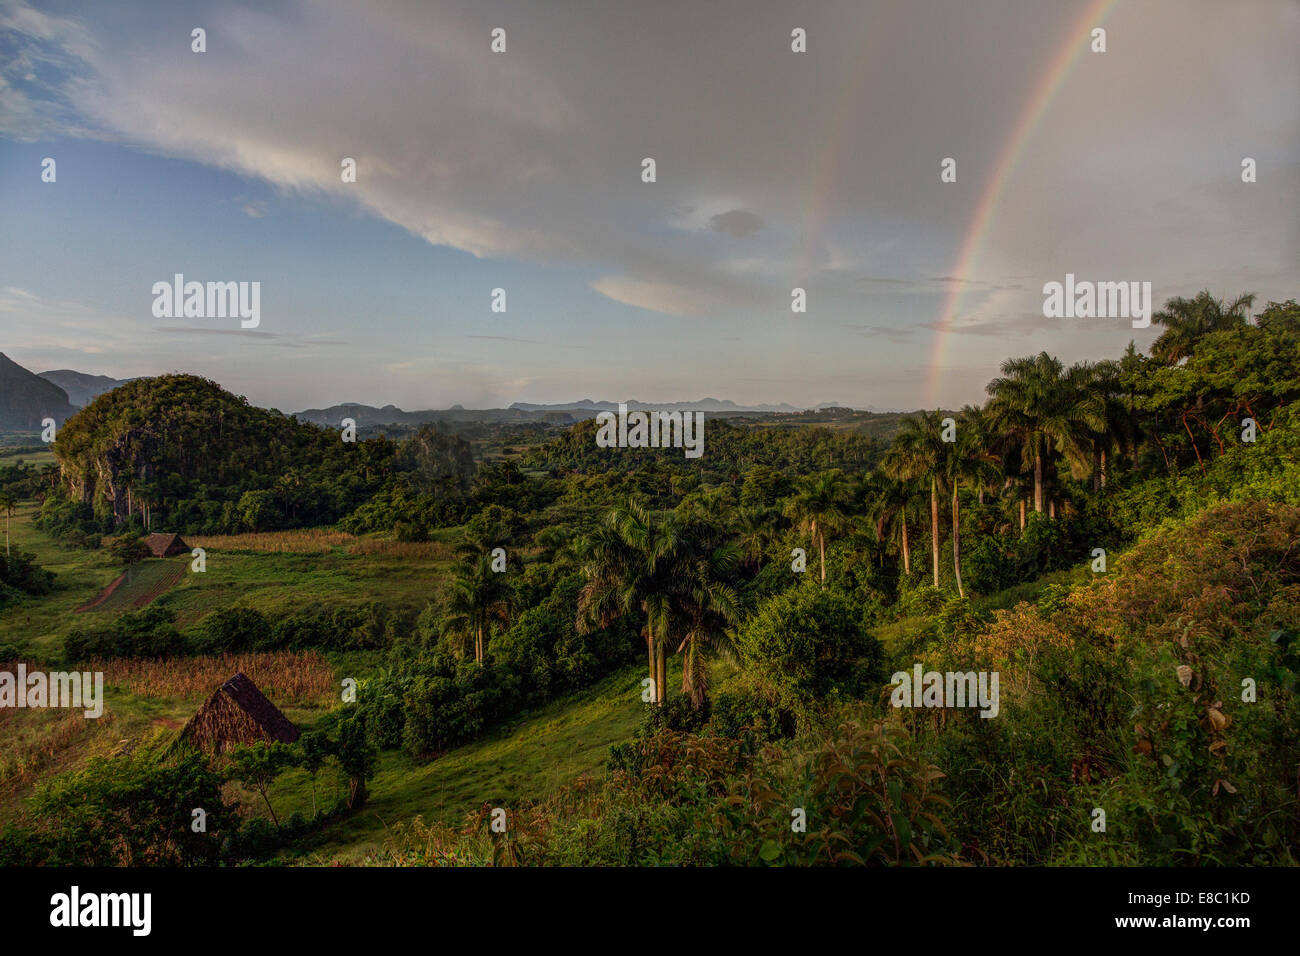 rainbow in the evening landscape of Vinales, Pinar del Rio province, Cuba - Stock Image